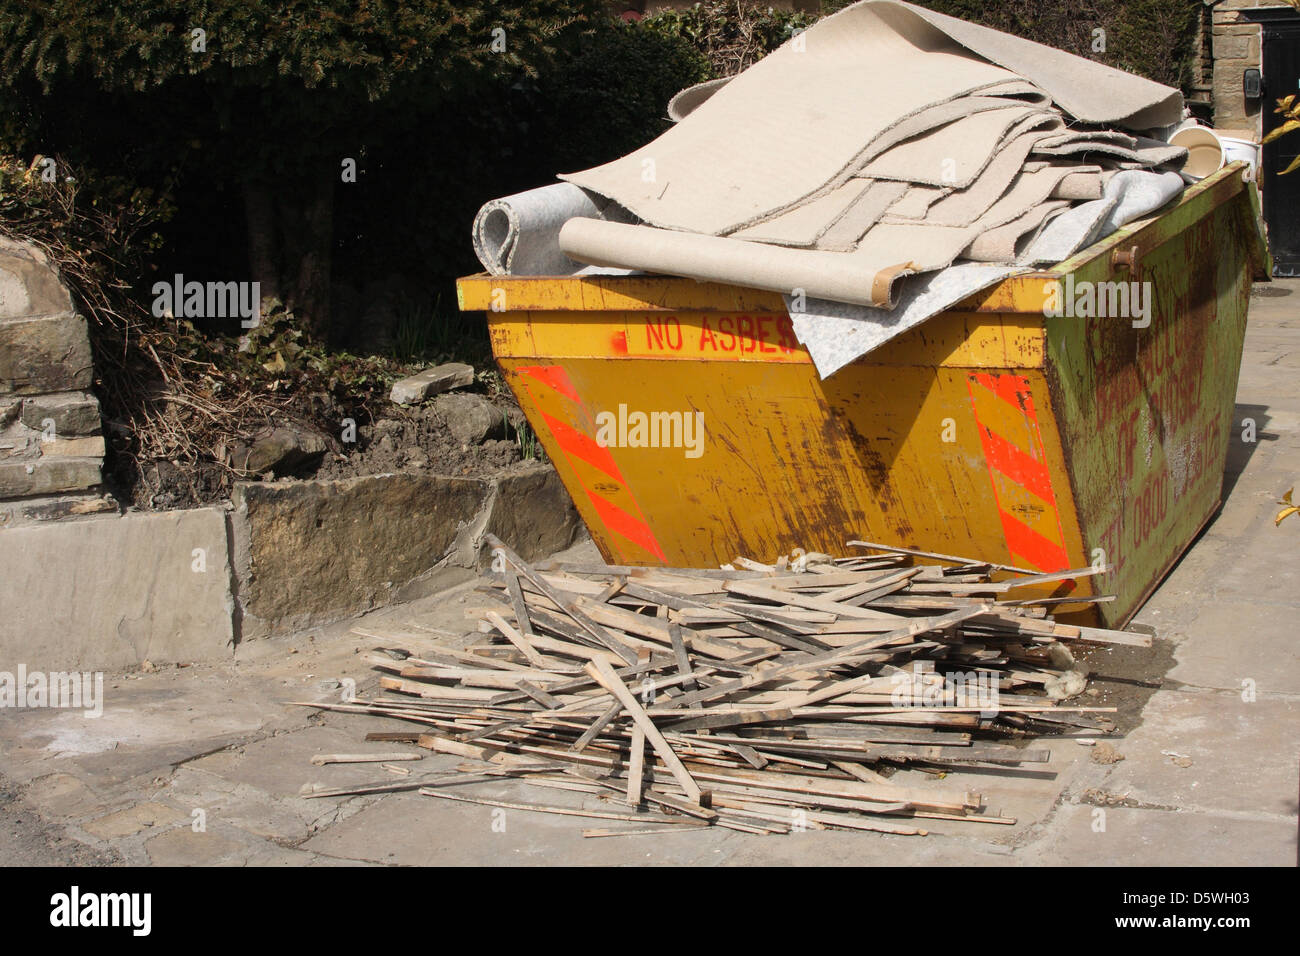 A skip overflowing with rubbish thrown out after a home renovation - Stock Image